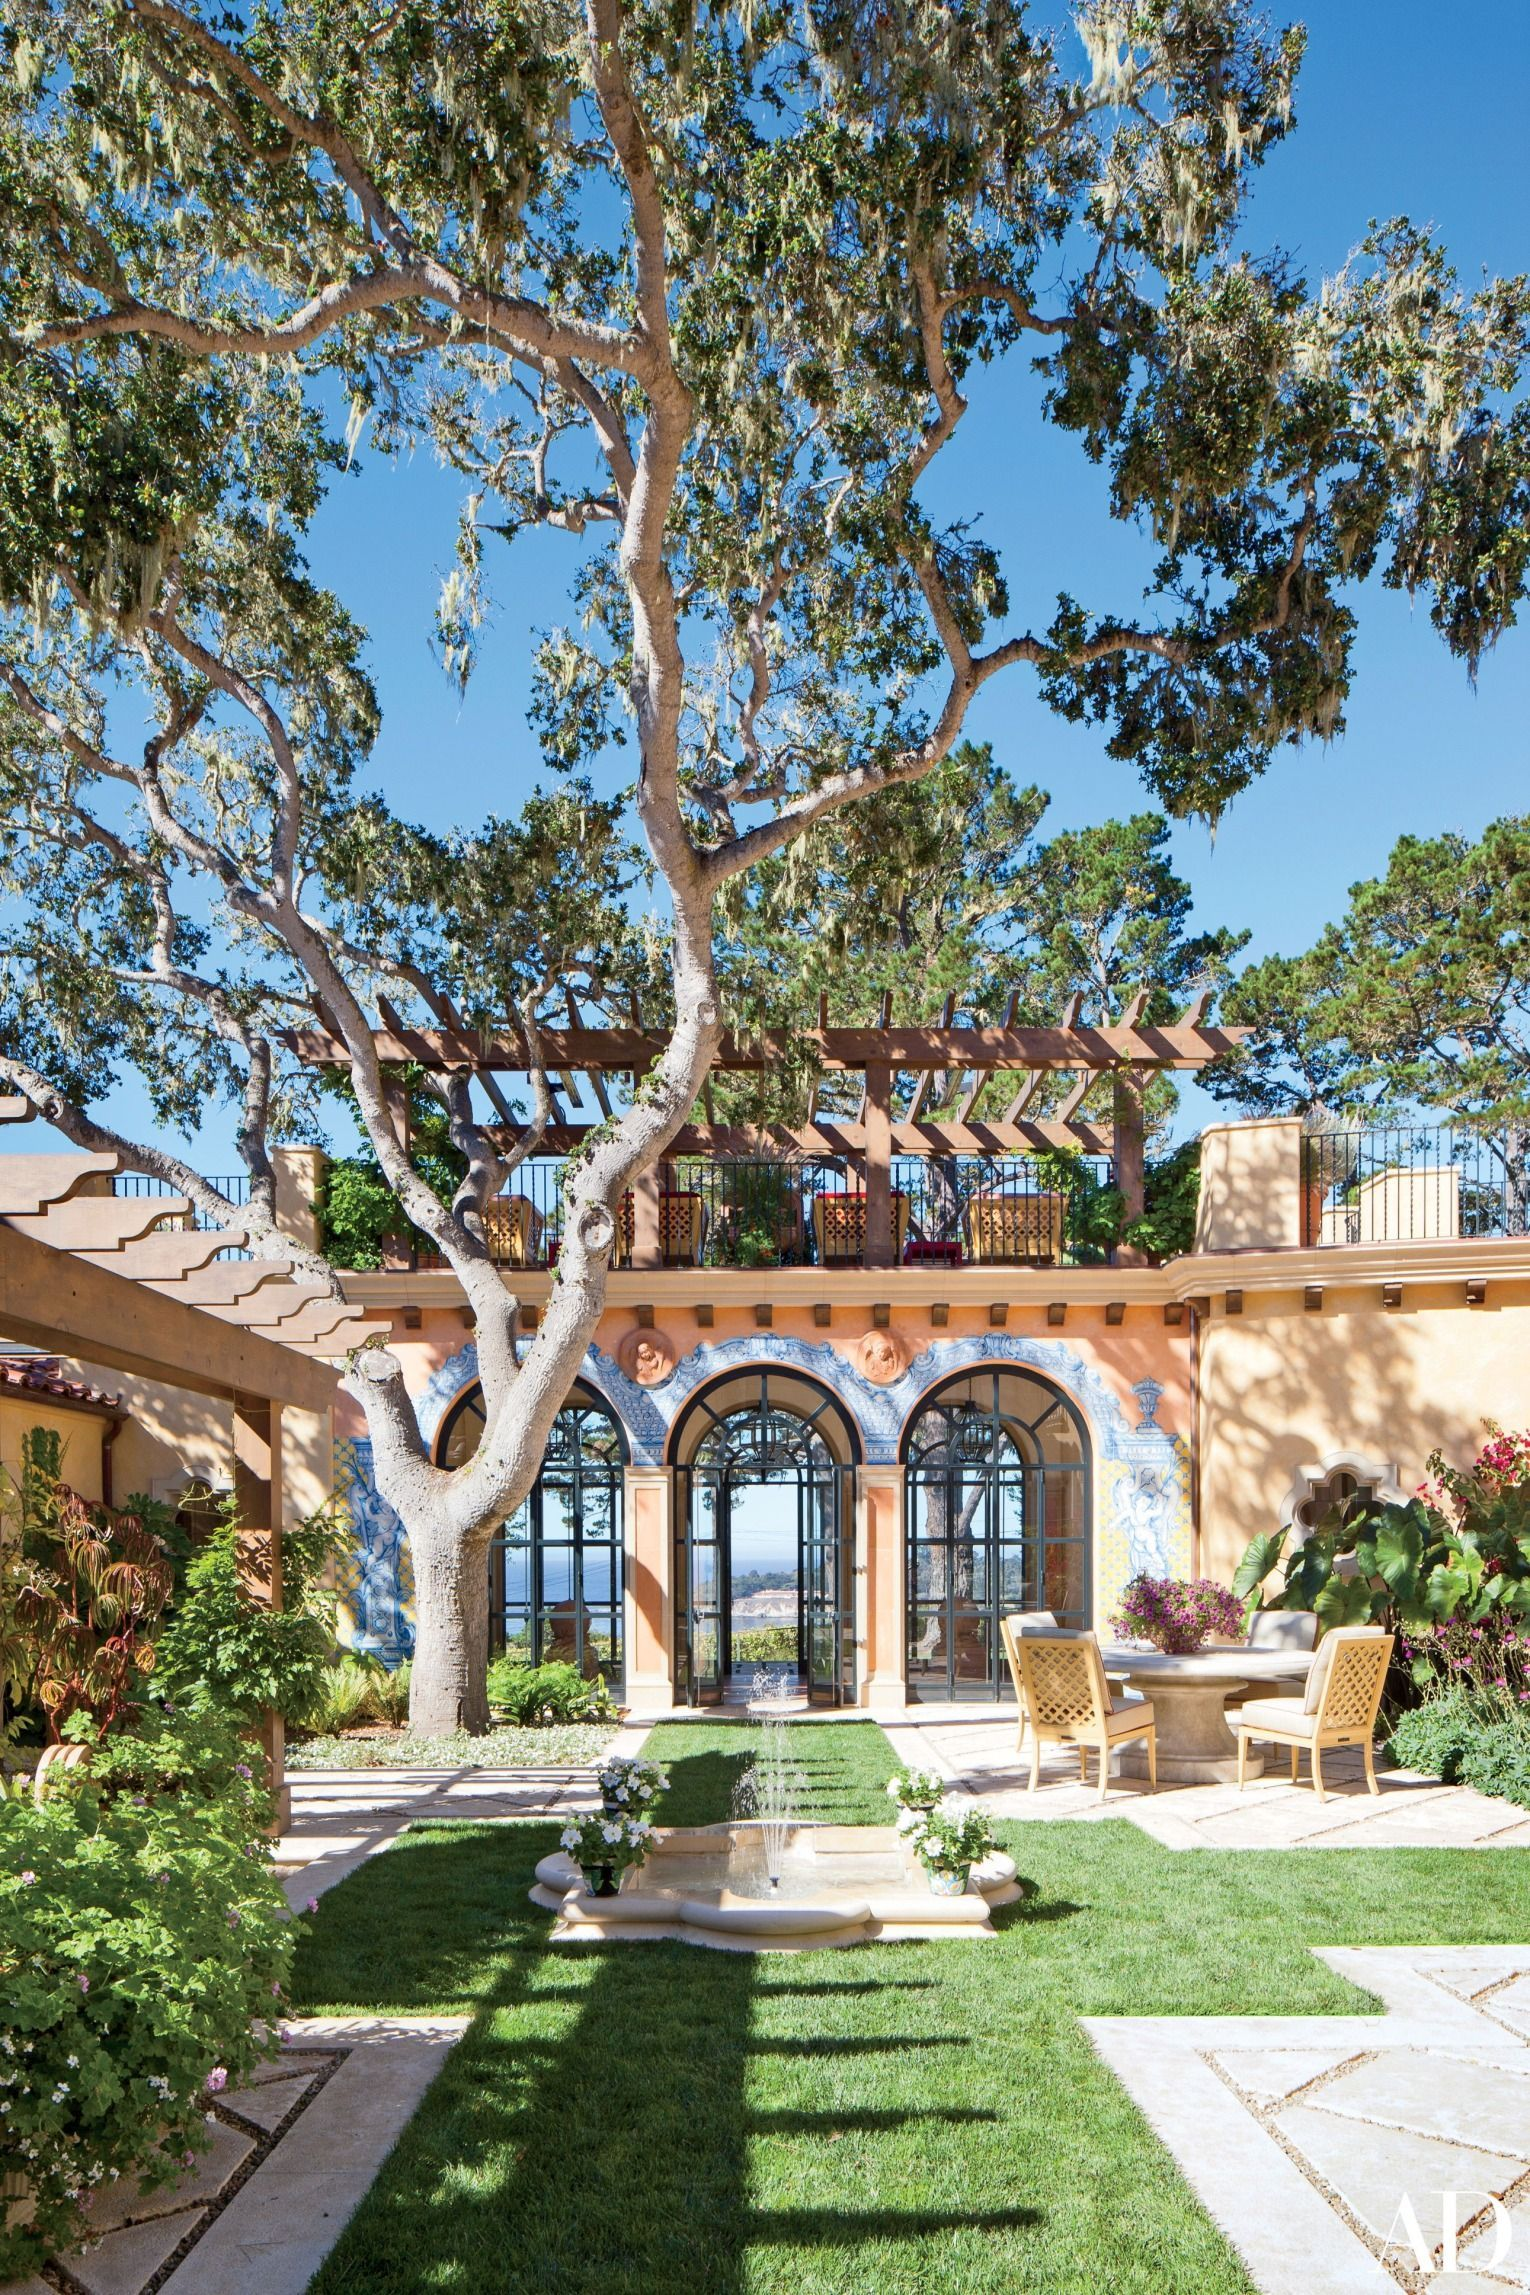 This Spanish Colonial Style Home Courtyard Features Hand Painted Tilework Around